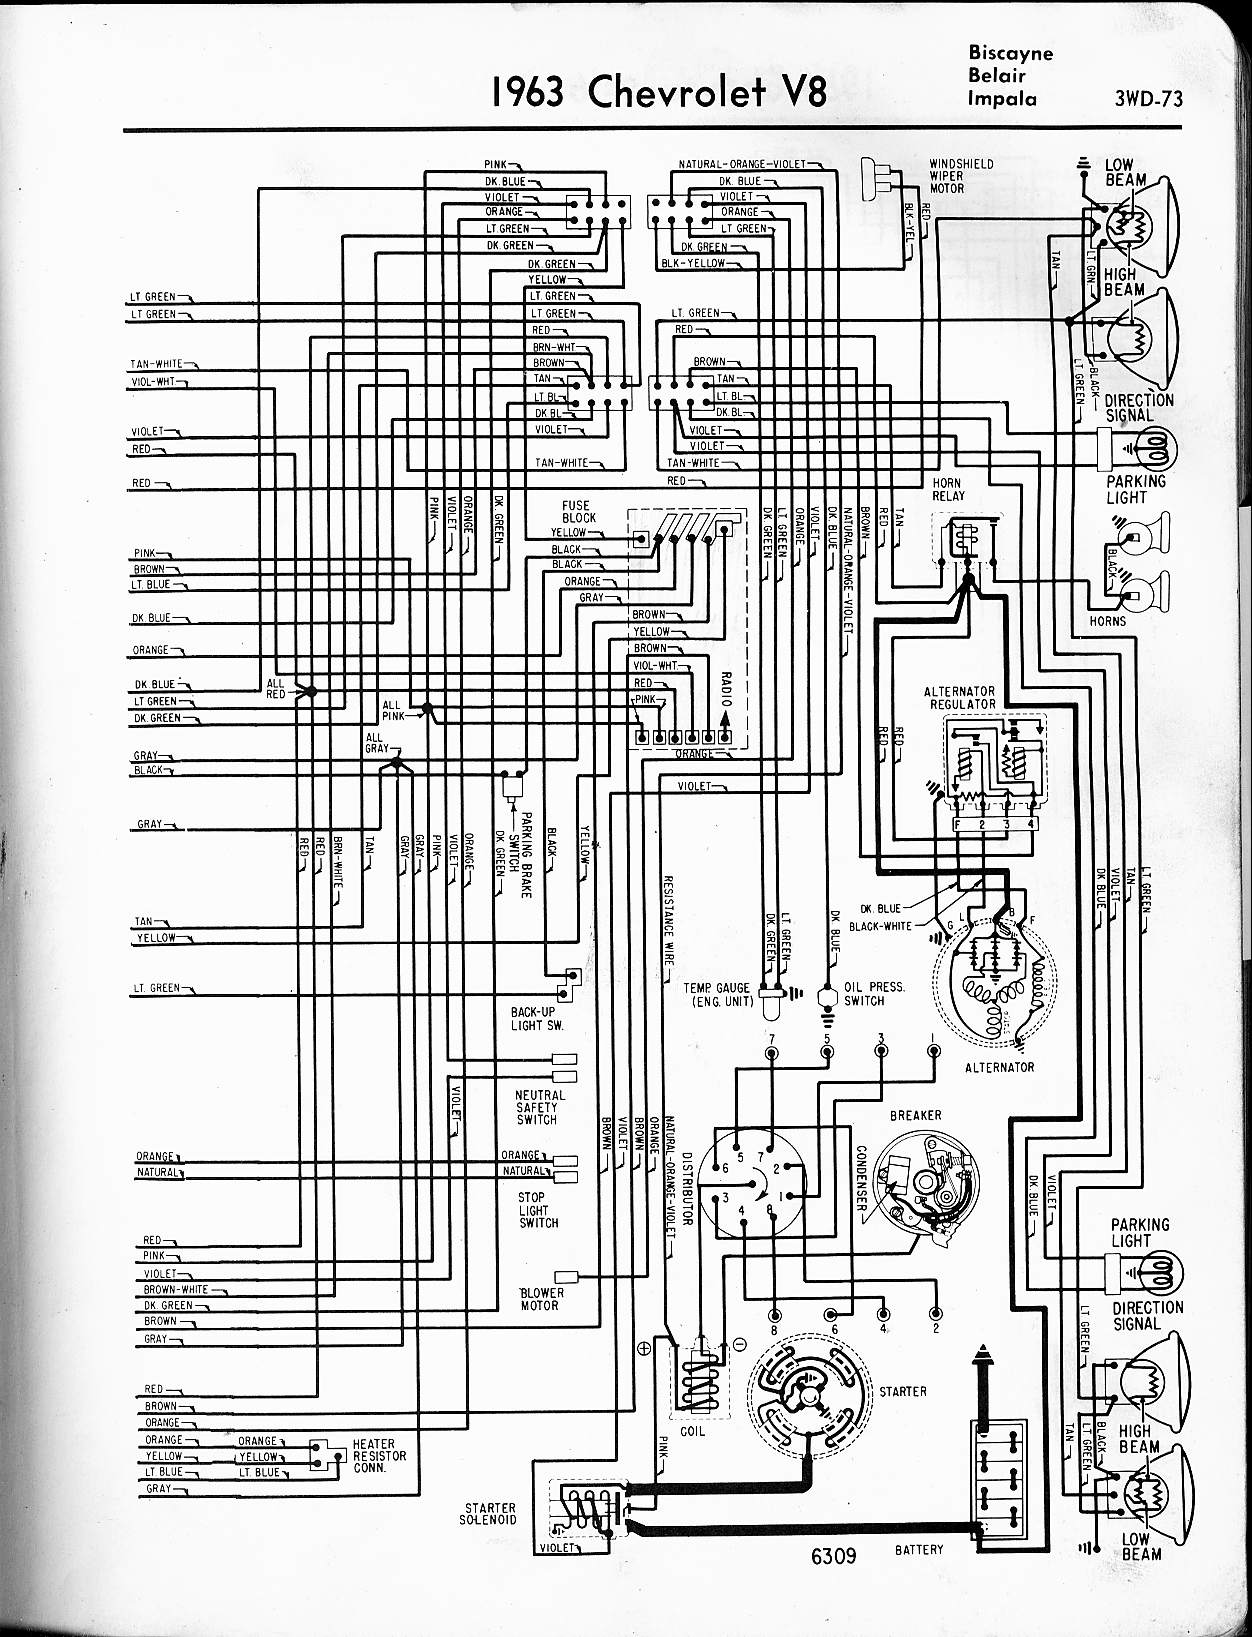 MWireChev64_3WD 073 57 65 chevy wiring diagrams,wiring free download printable wiring,65 Chevy C10 Wire Diagram